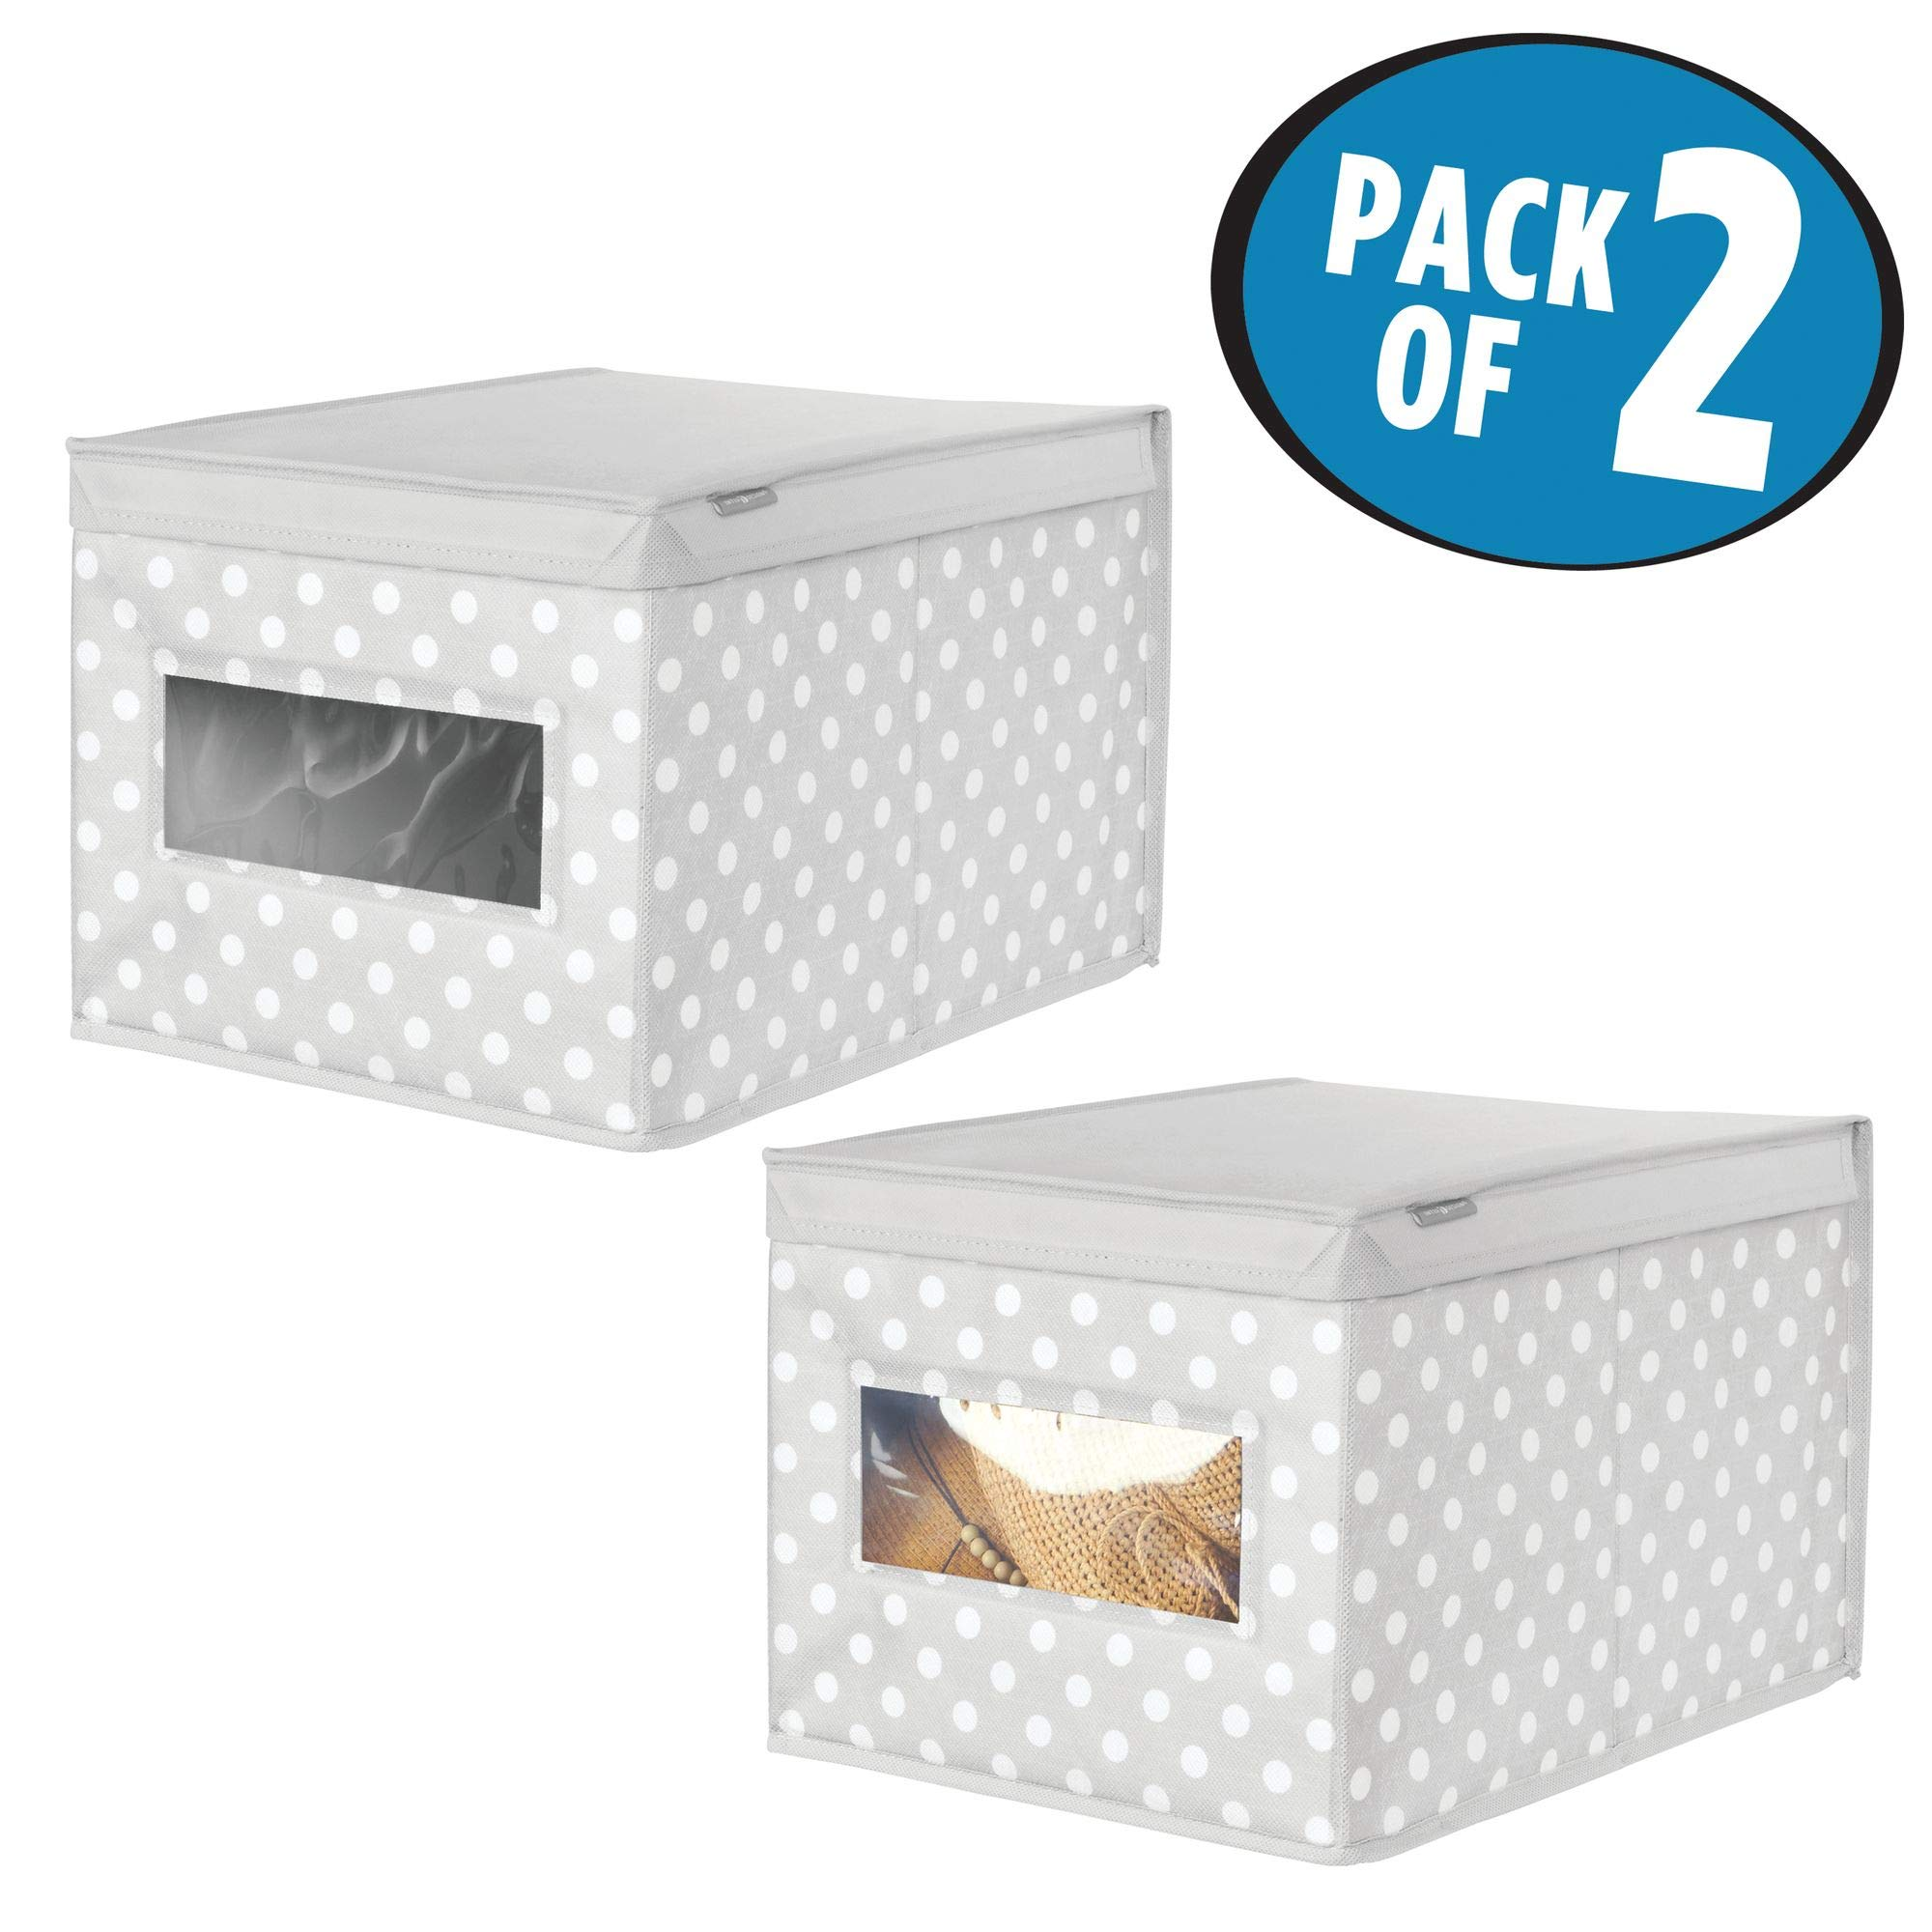 mDesign Soft Stackable Fabric Closet Storage Organizer Holder Box - Clear Window, Attached Hinged Lid, for Child/Kids Room, Nursery - Polka Dot Pattern - Large, Pack of 2, Light Gray with White Dots by mDesign (Image #2)